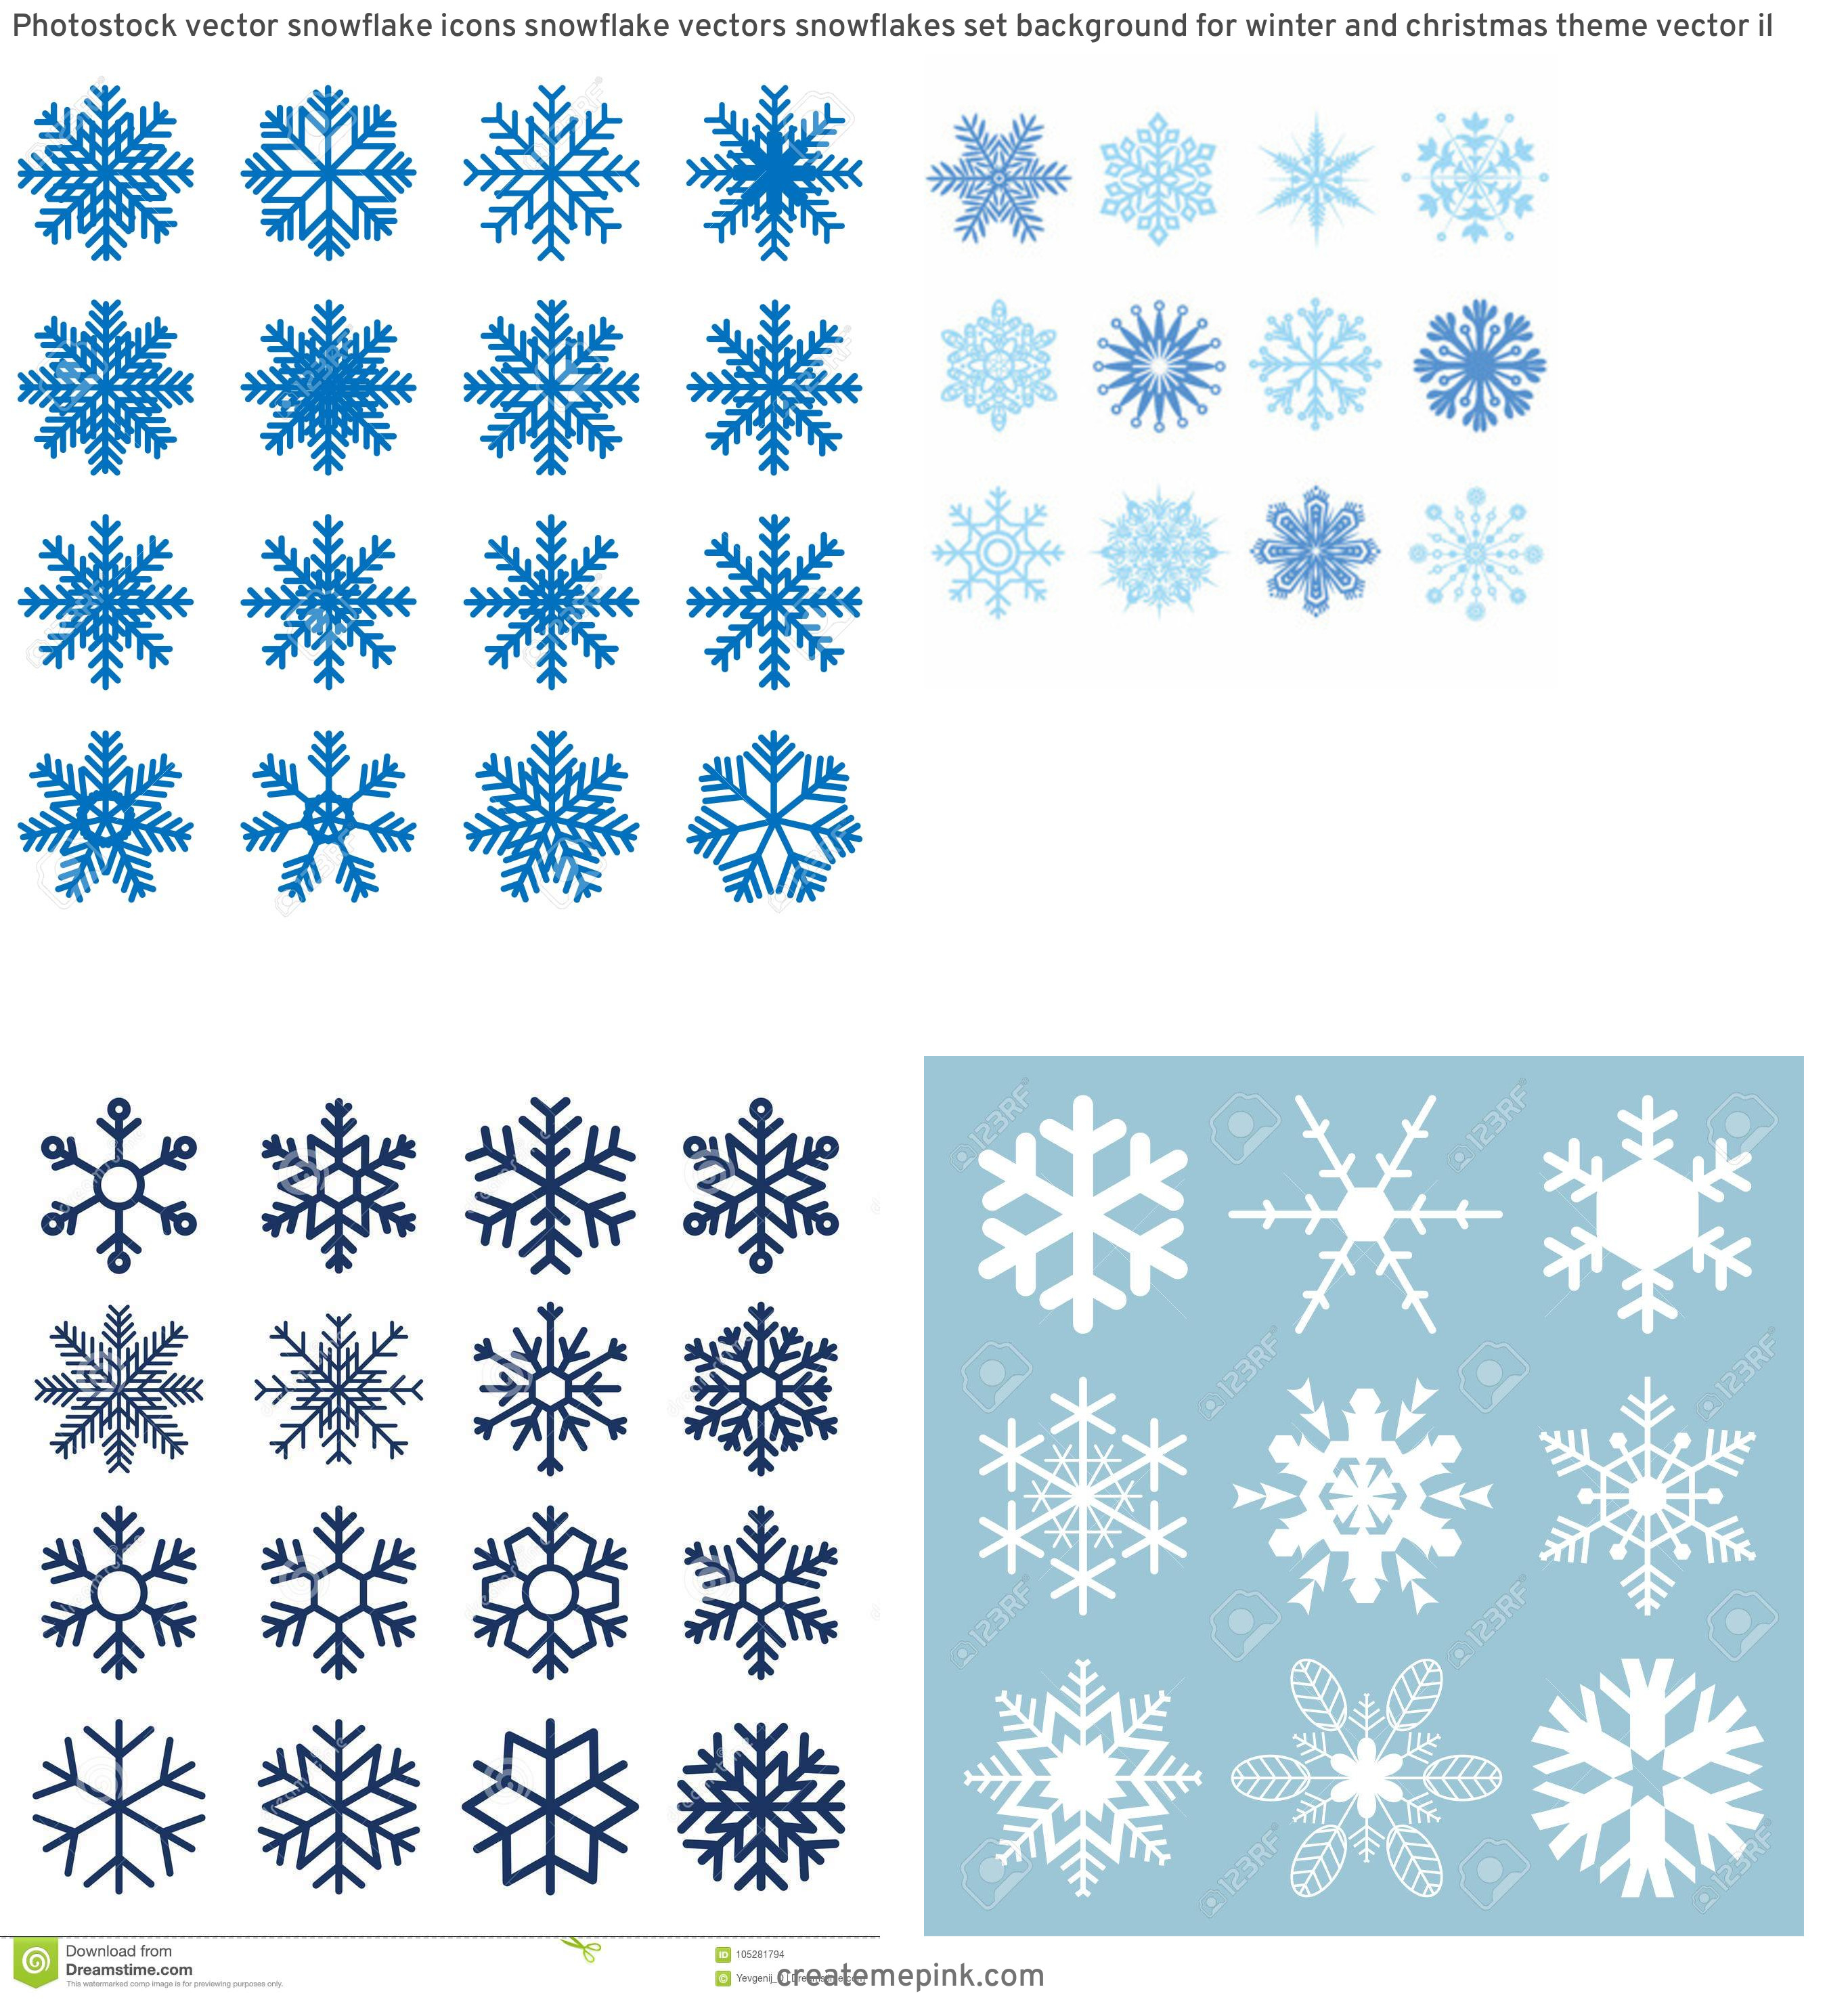 Free Vector Snow Flakes: Photostock Vector Snowflake Icons Snowflake Vectors Snowflakes Set Background For Winter And Christmas Theme Vector Il